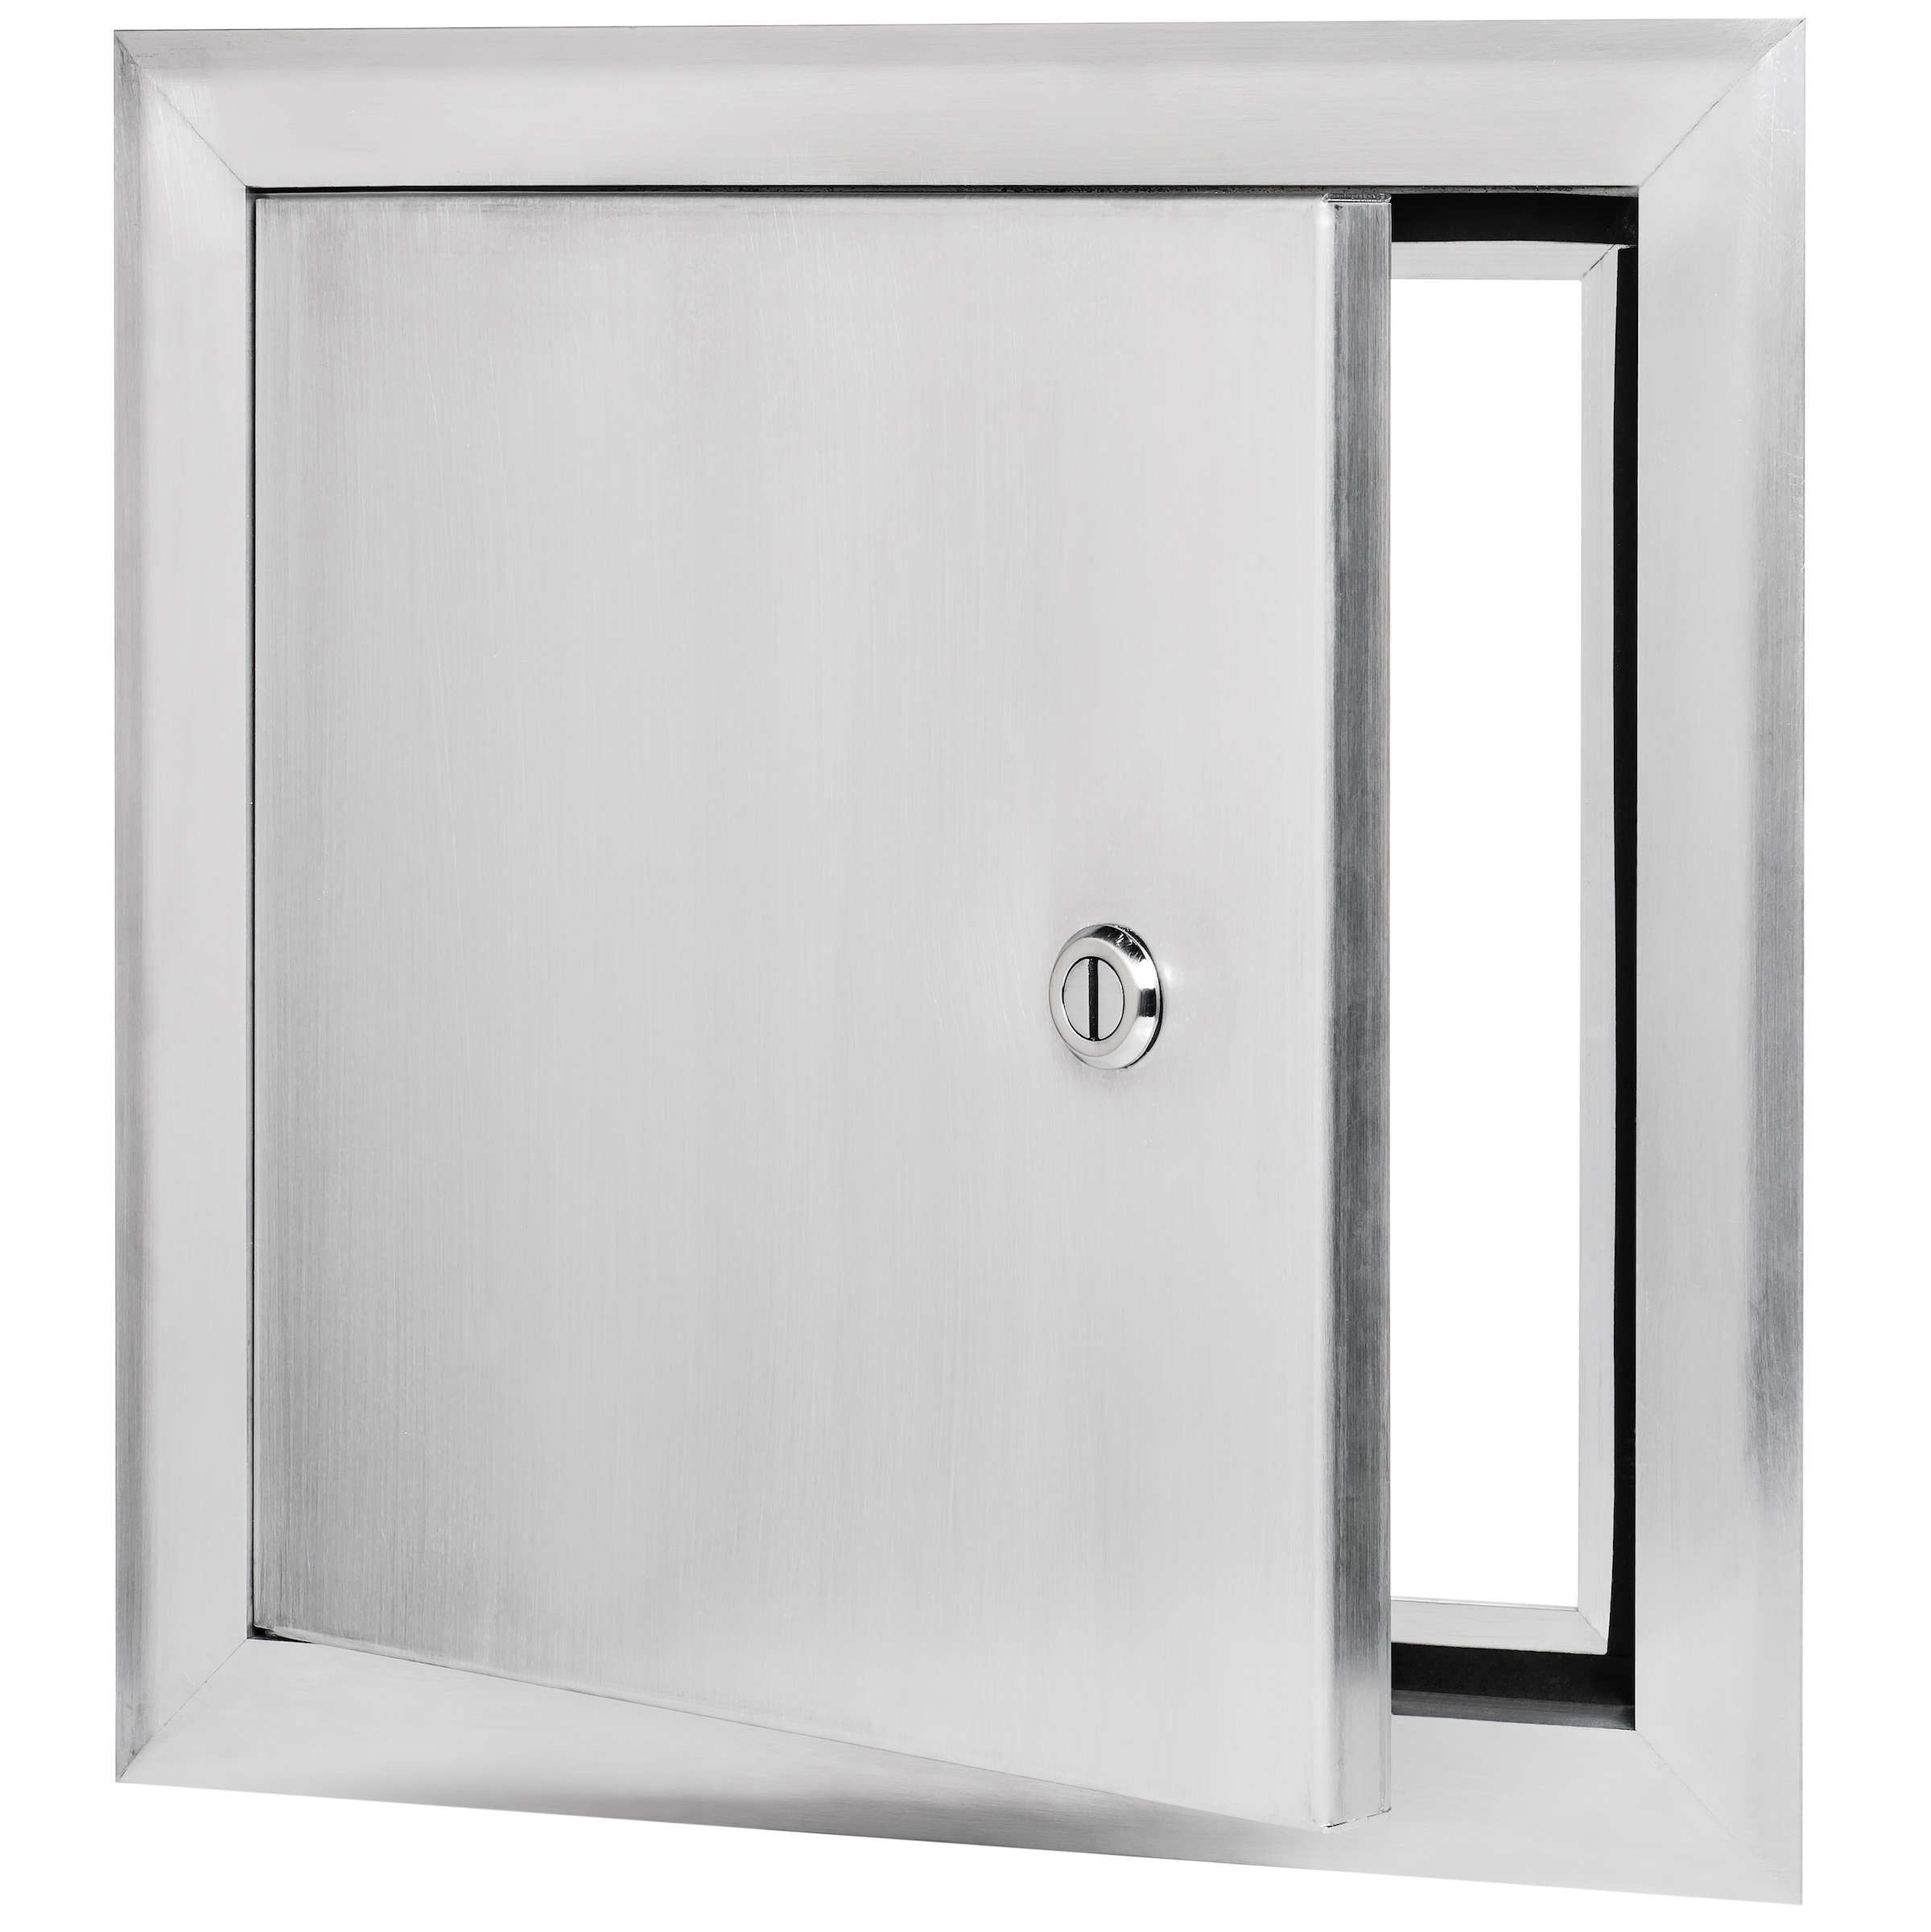 barbeques brand shop doors galore access door double by products plumbing our